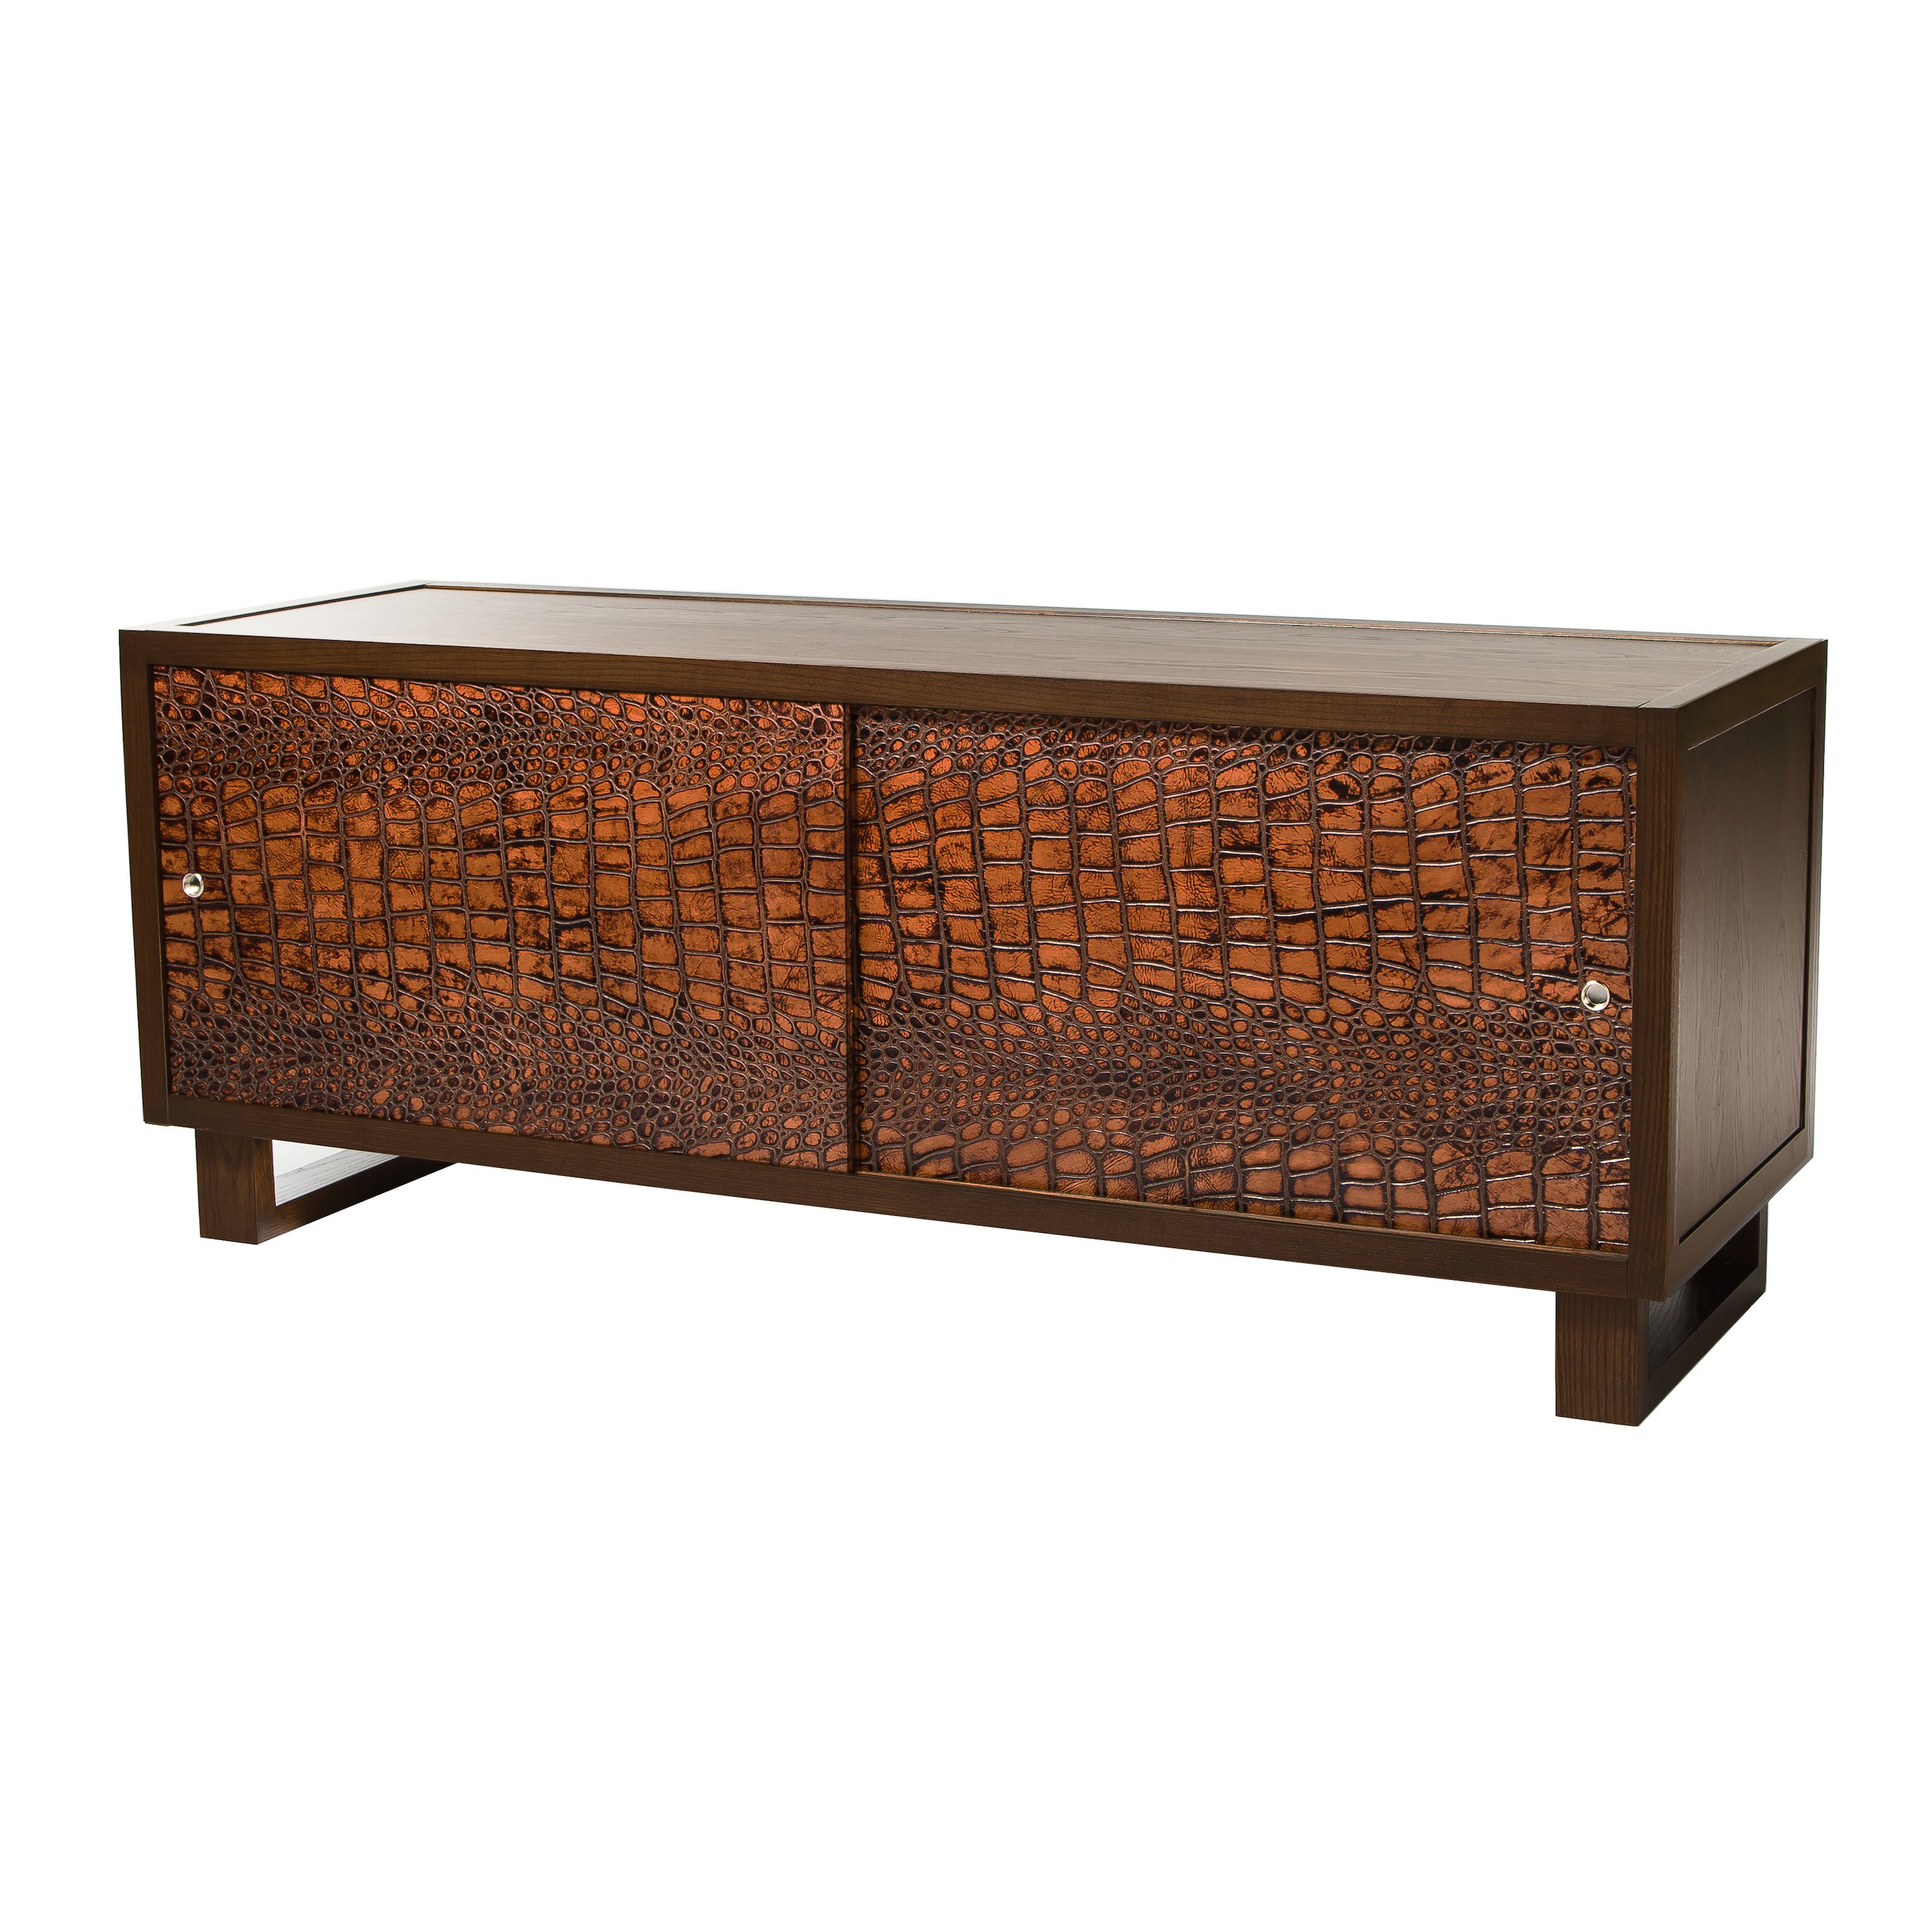 Leather Croc Credenza Media Console Espresso Embossed